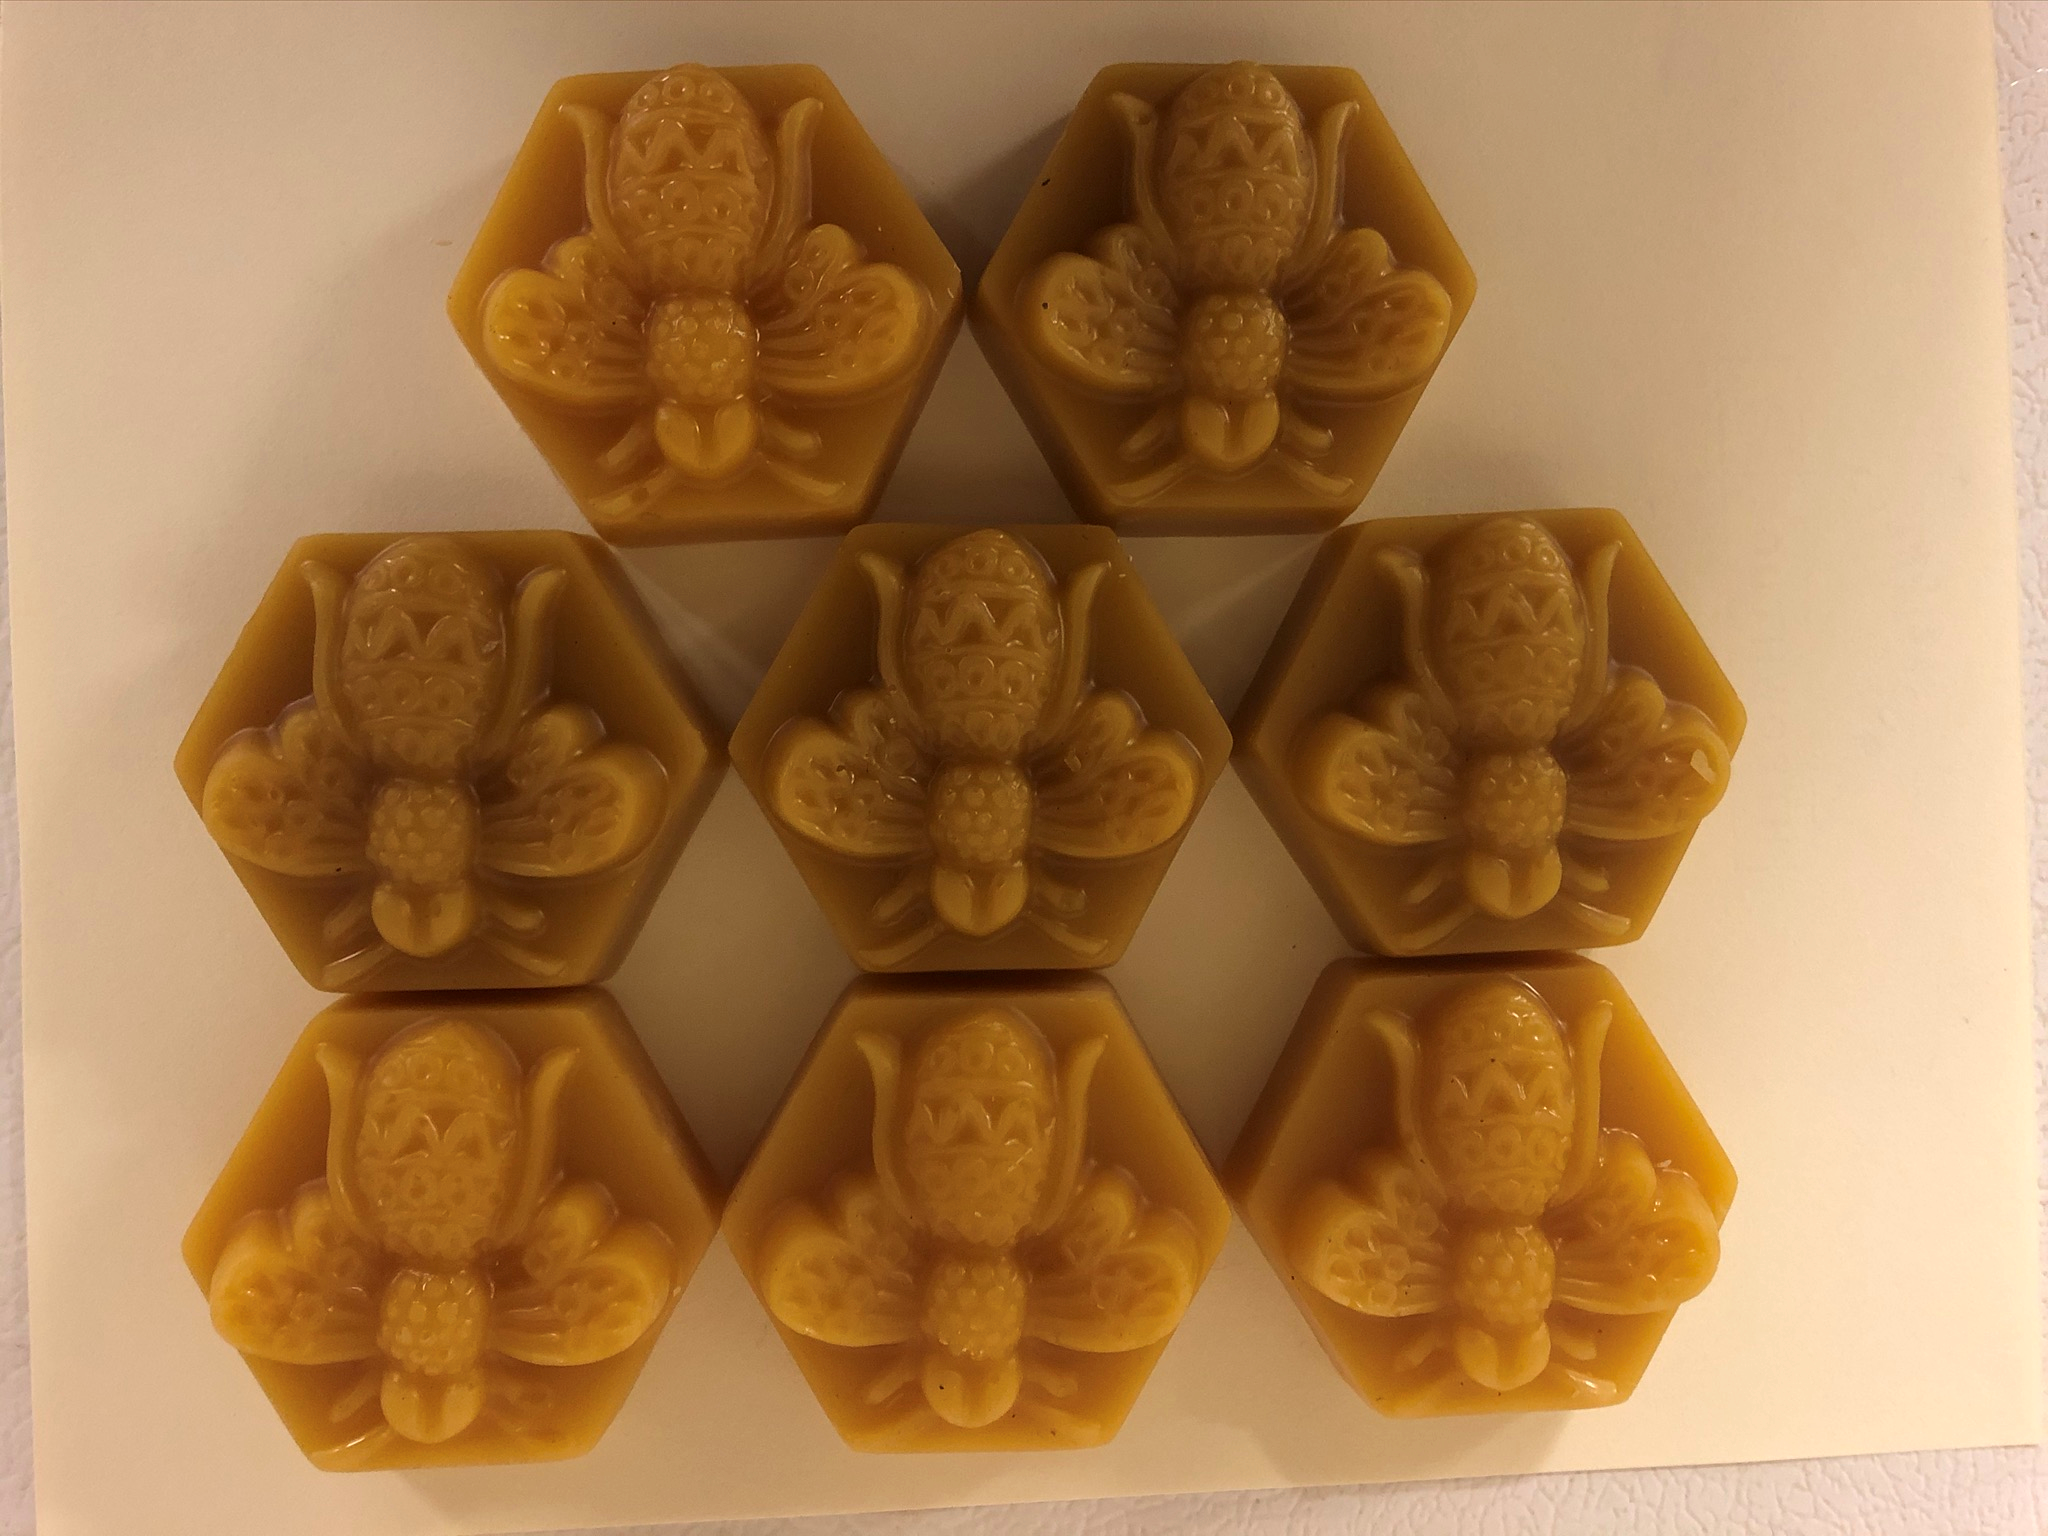 Bees Wax – filtered 100% pure